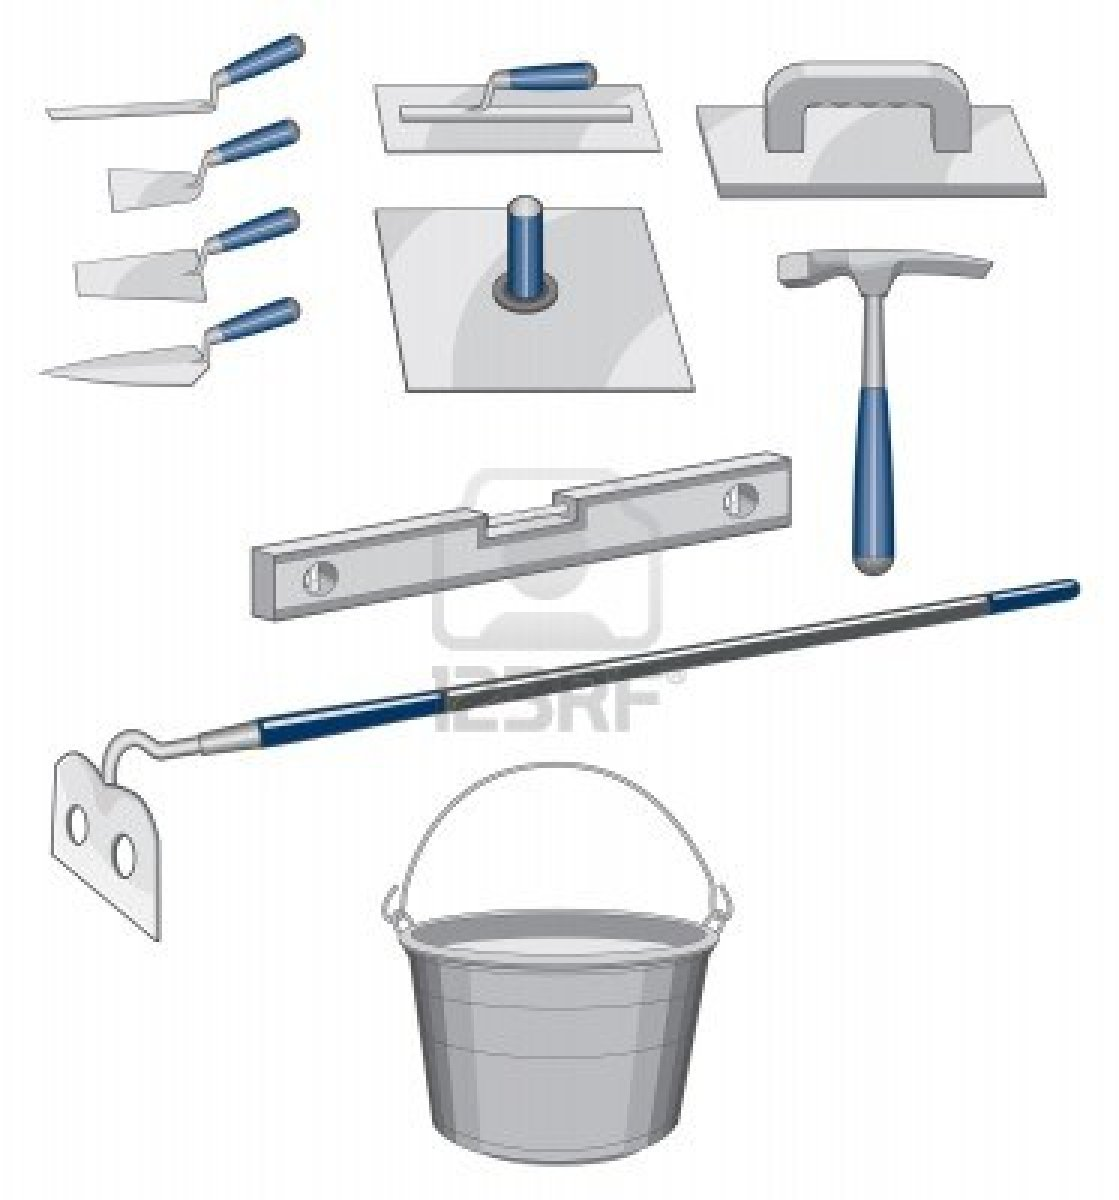 Of Tools Used For Bricklaying Or Masonry Work Jpg   Masonry Tools